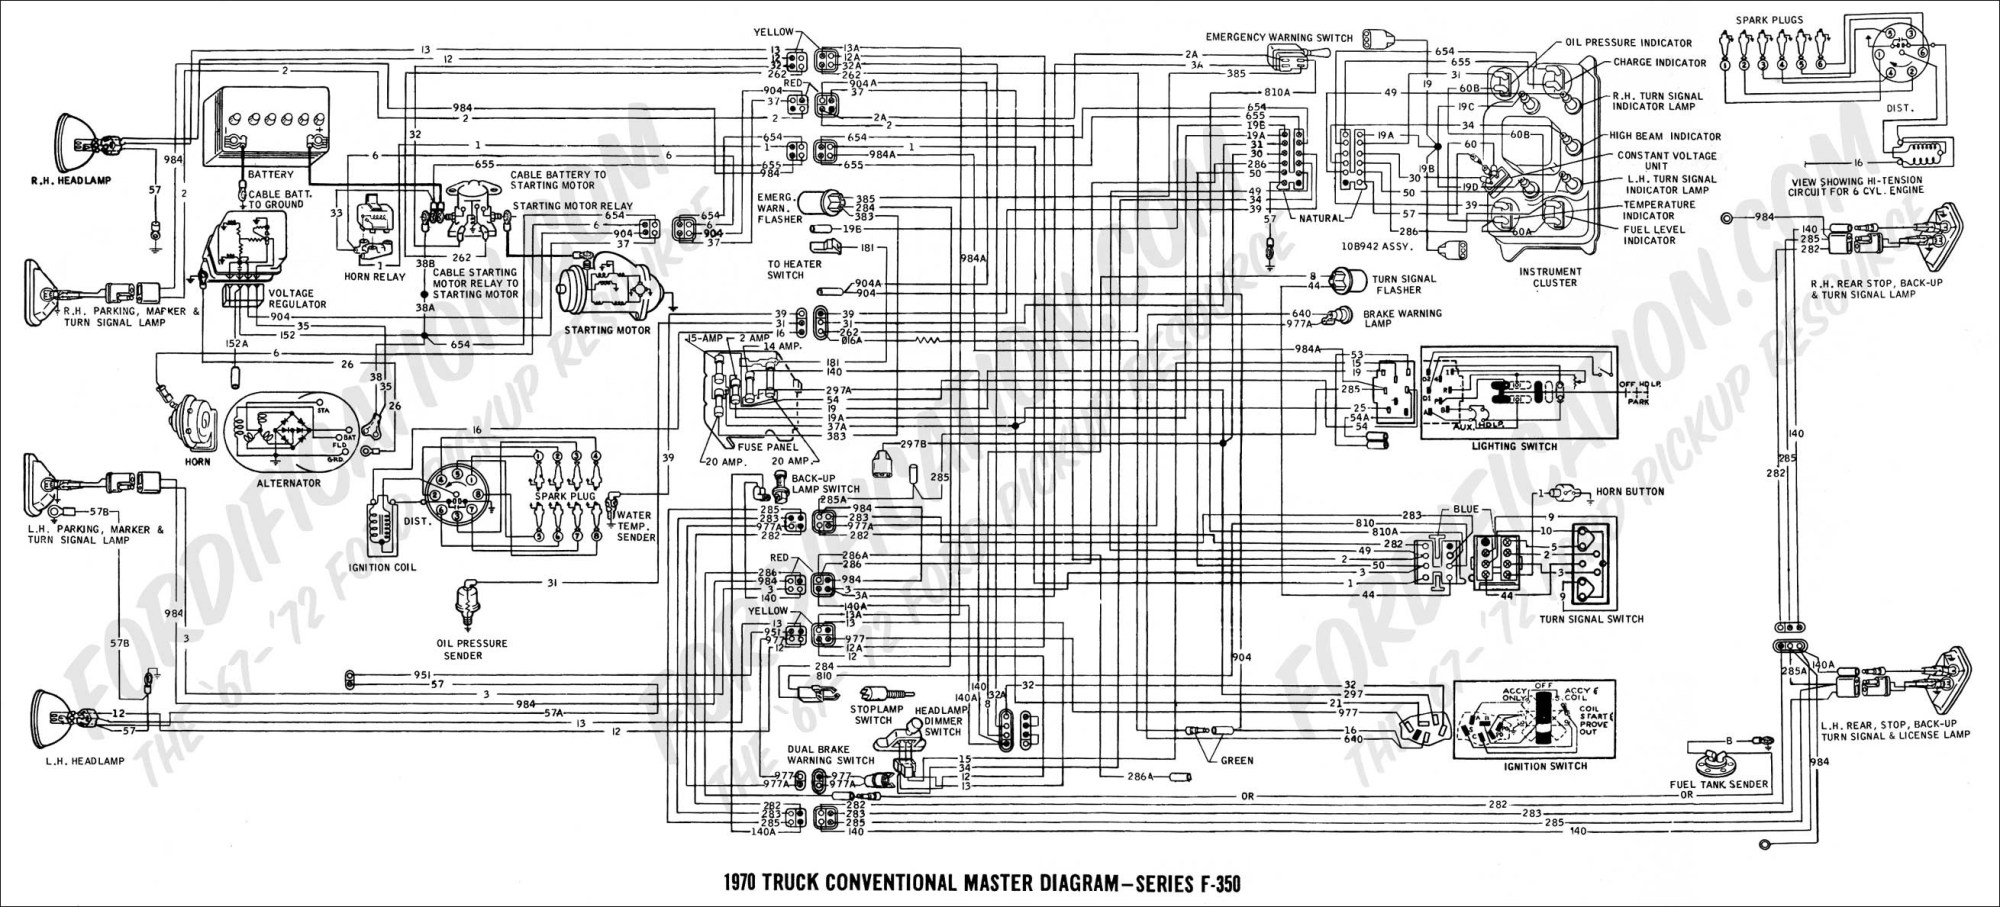 hight resolution of ford f250 starter solenoid wiring diagram ford starter motor wiring diagram new ford f250 starter